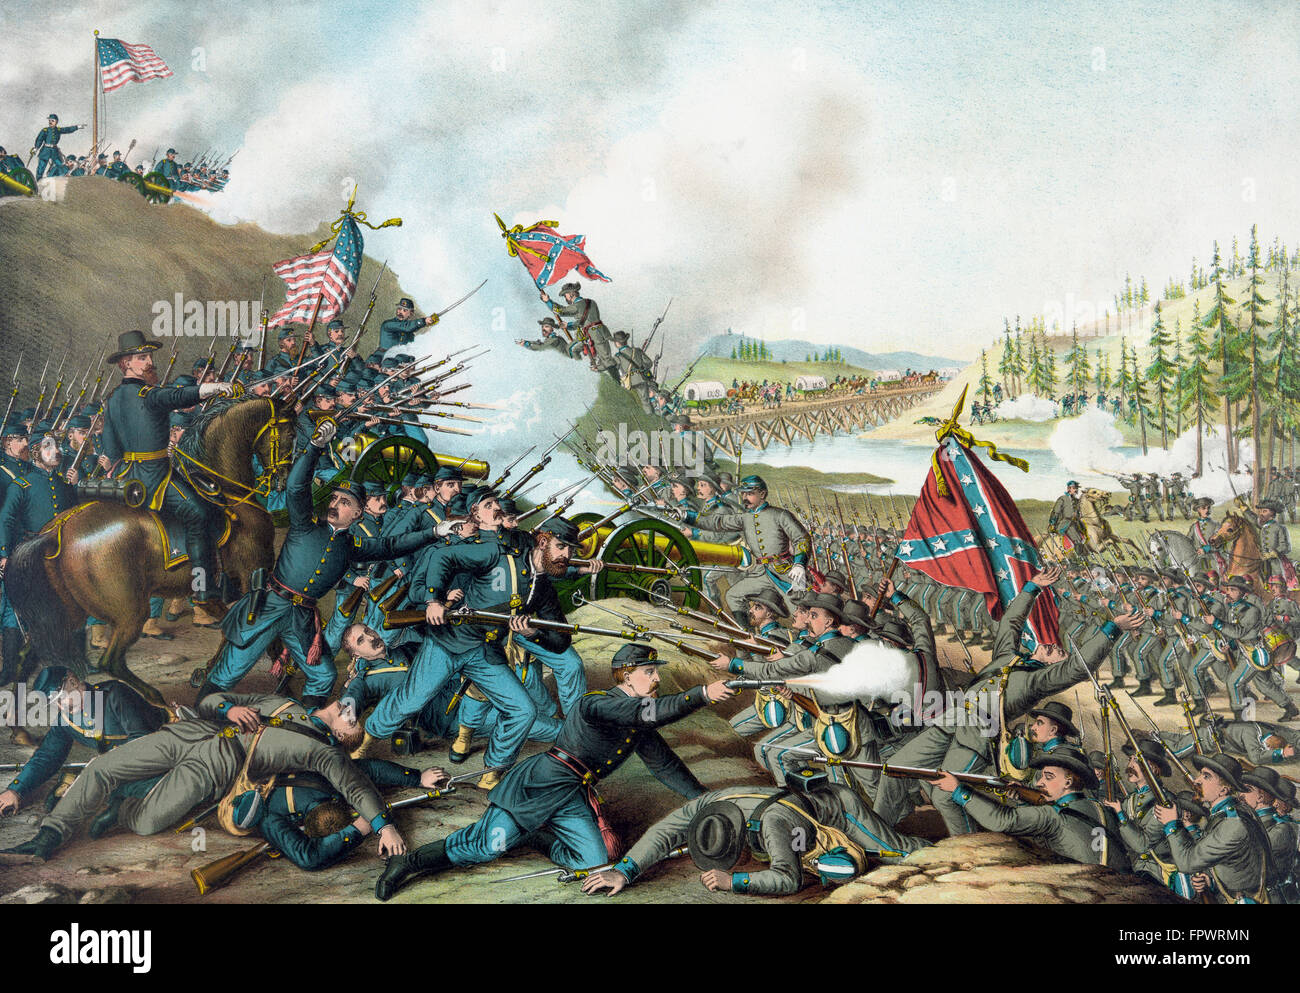 Vintage Civil War print of the Battle of Franklin. The battle was fought on November 30, 1864, at Franklin, Tennessee, - Stock Image